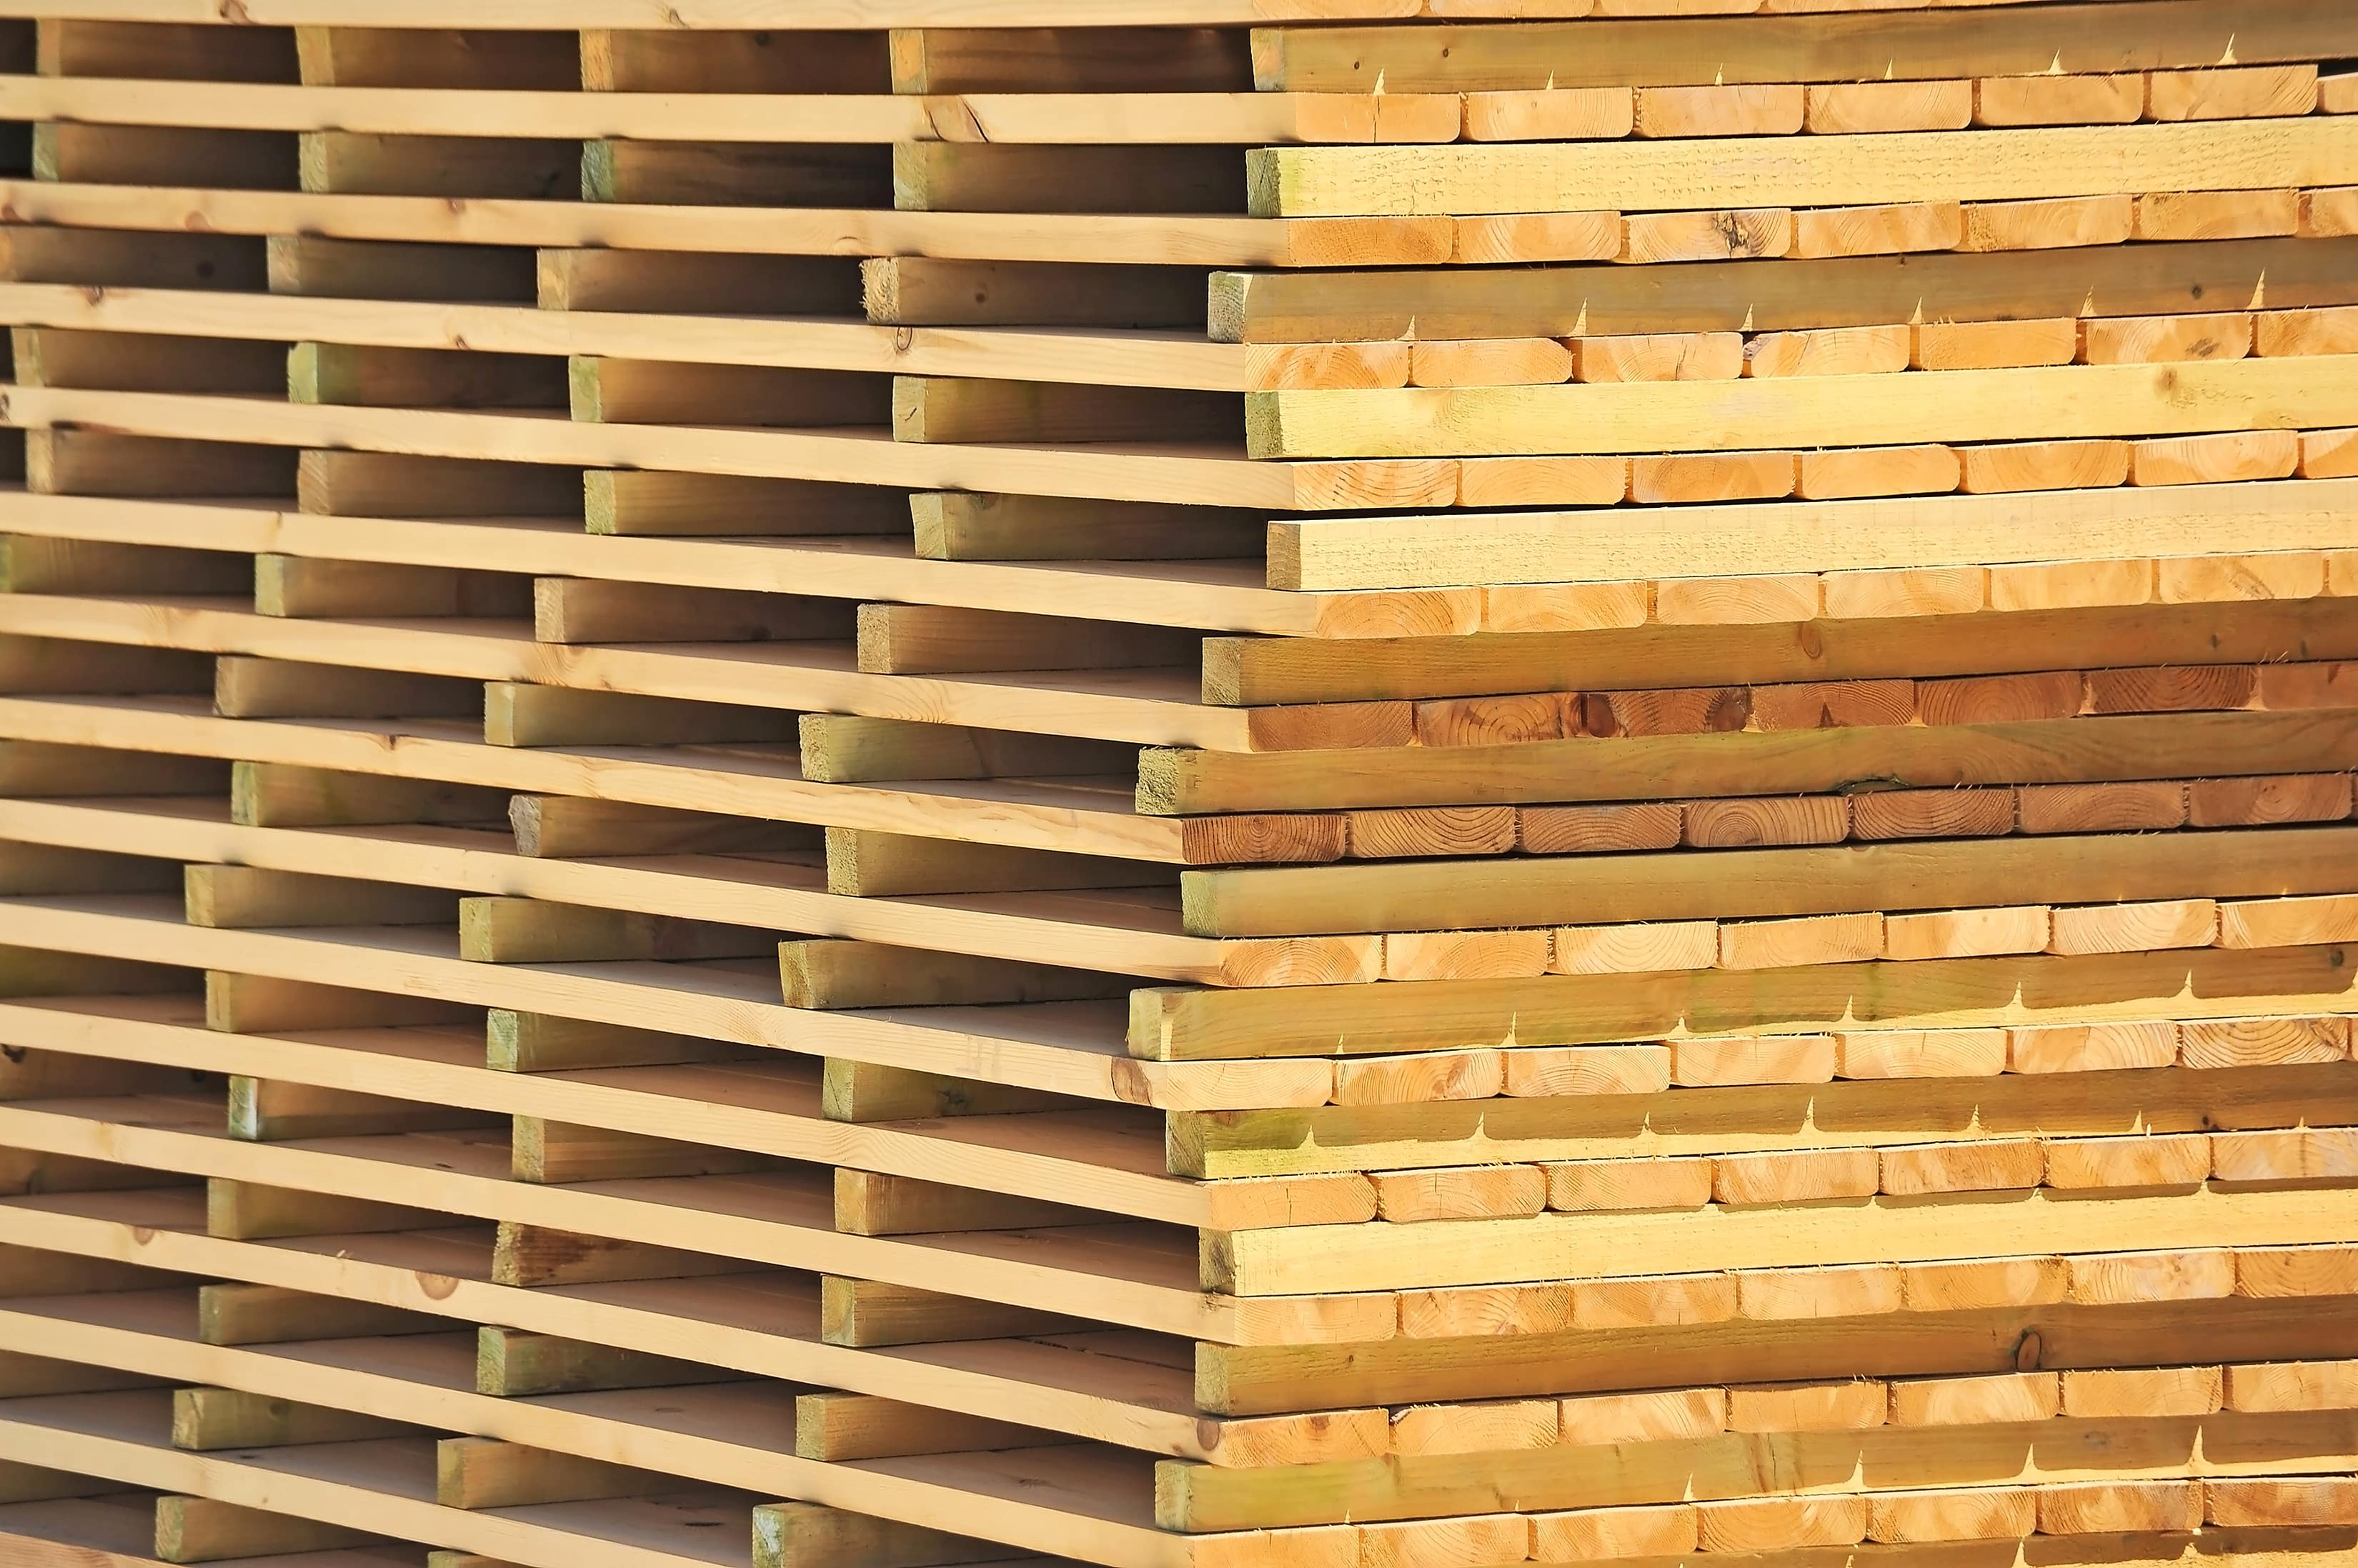 We plan to start trading dried timber and provide wood drying services